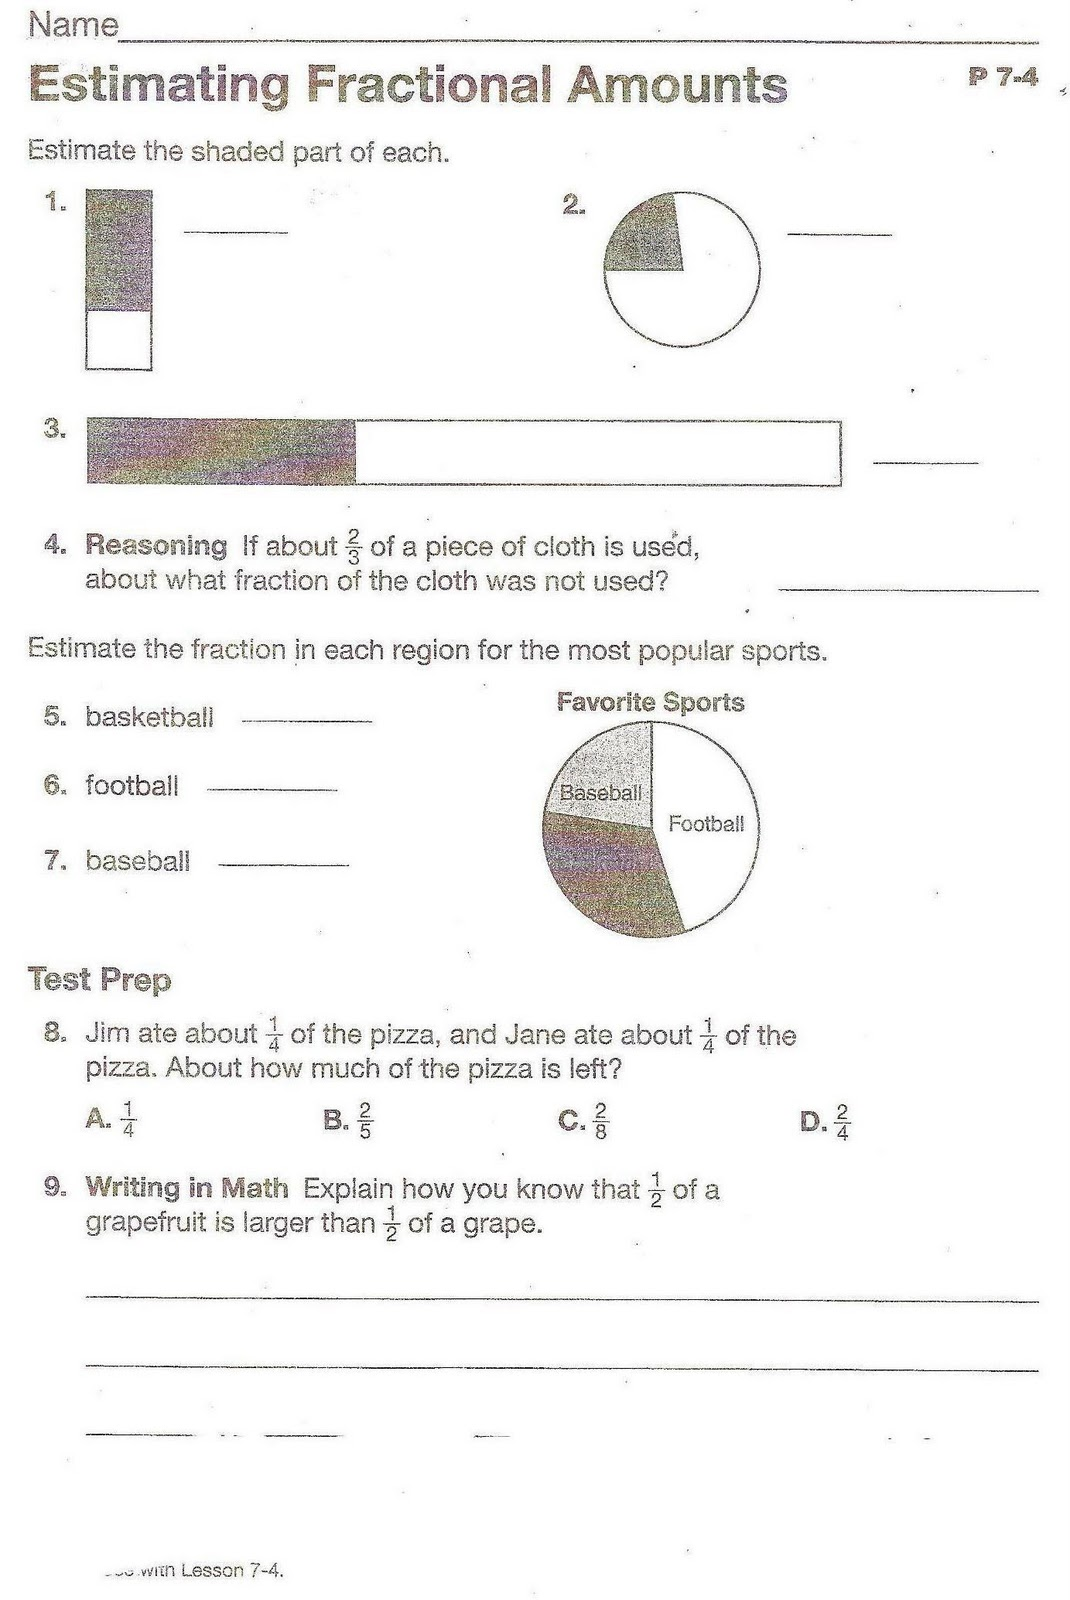 5th Grade At Sage Hills 7 4 Math Homework Estimating